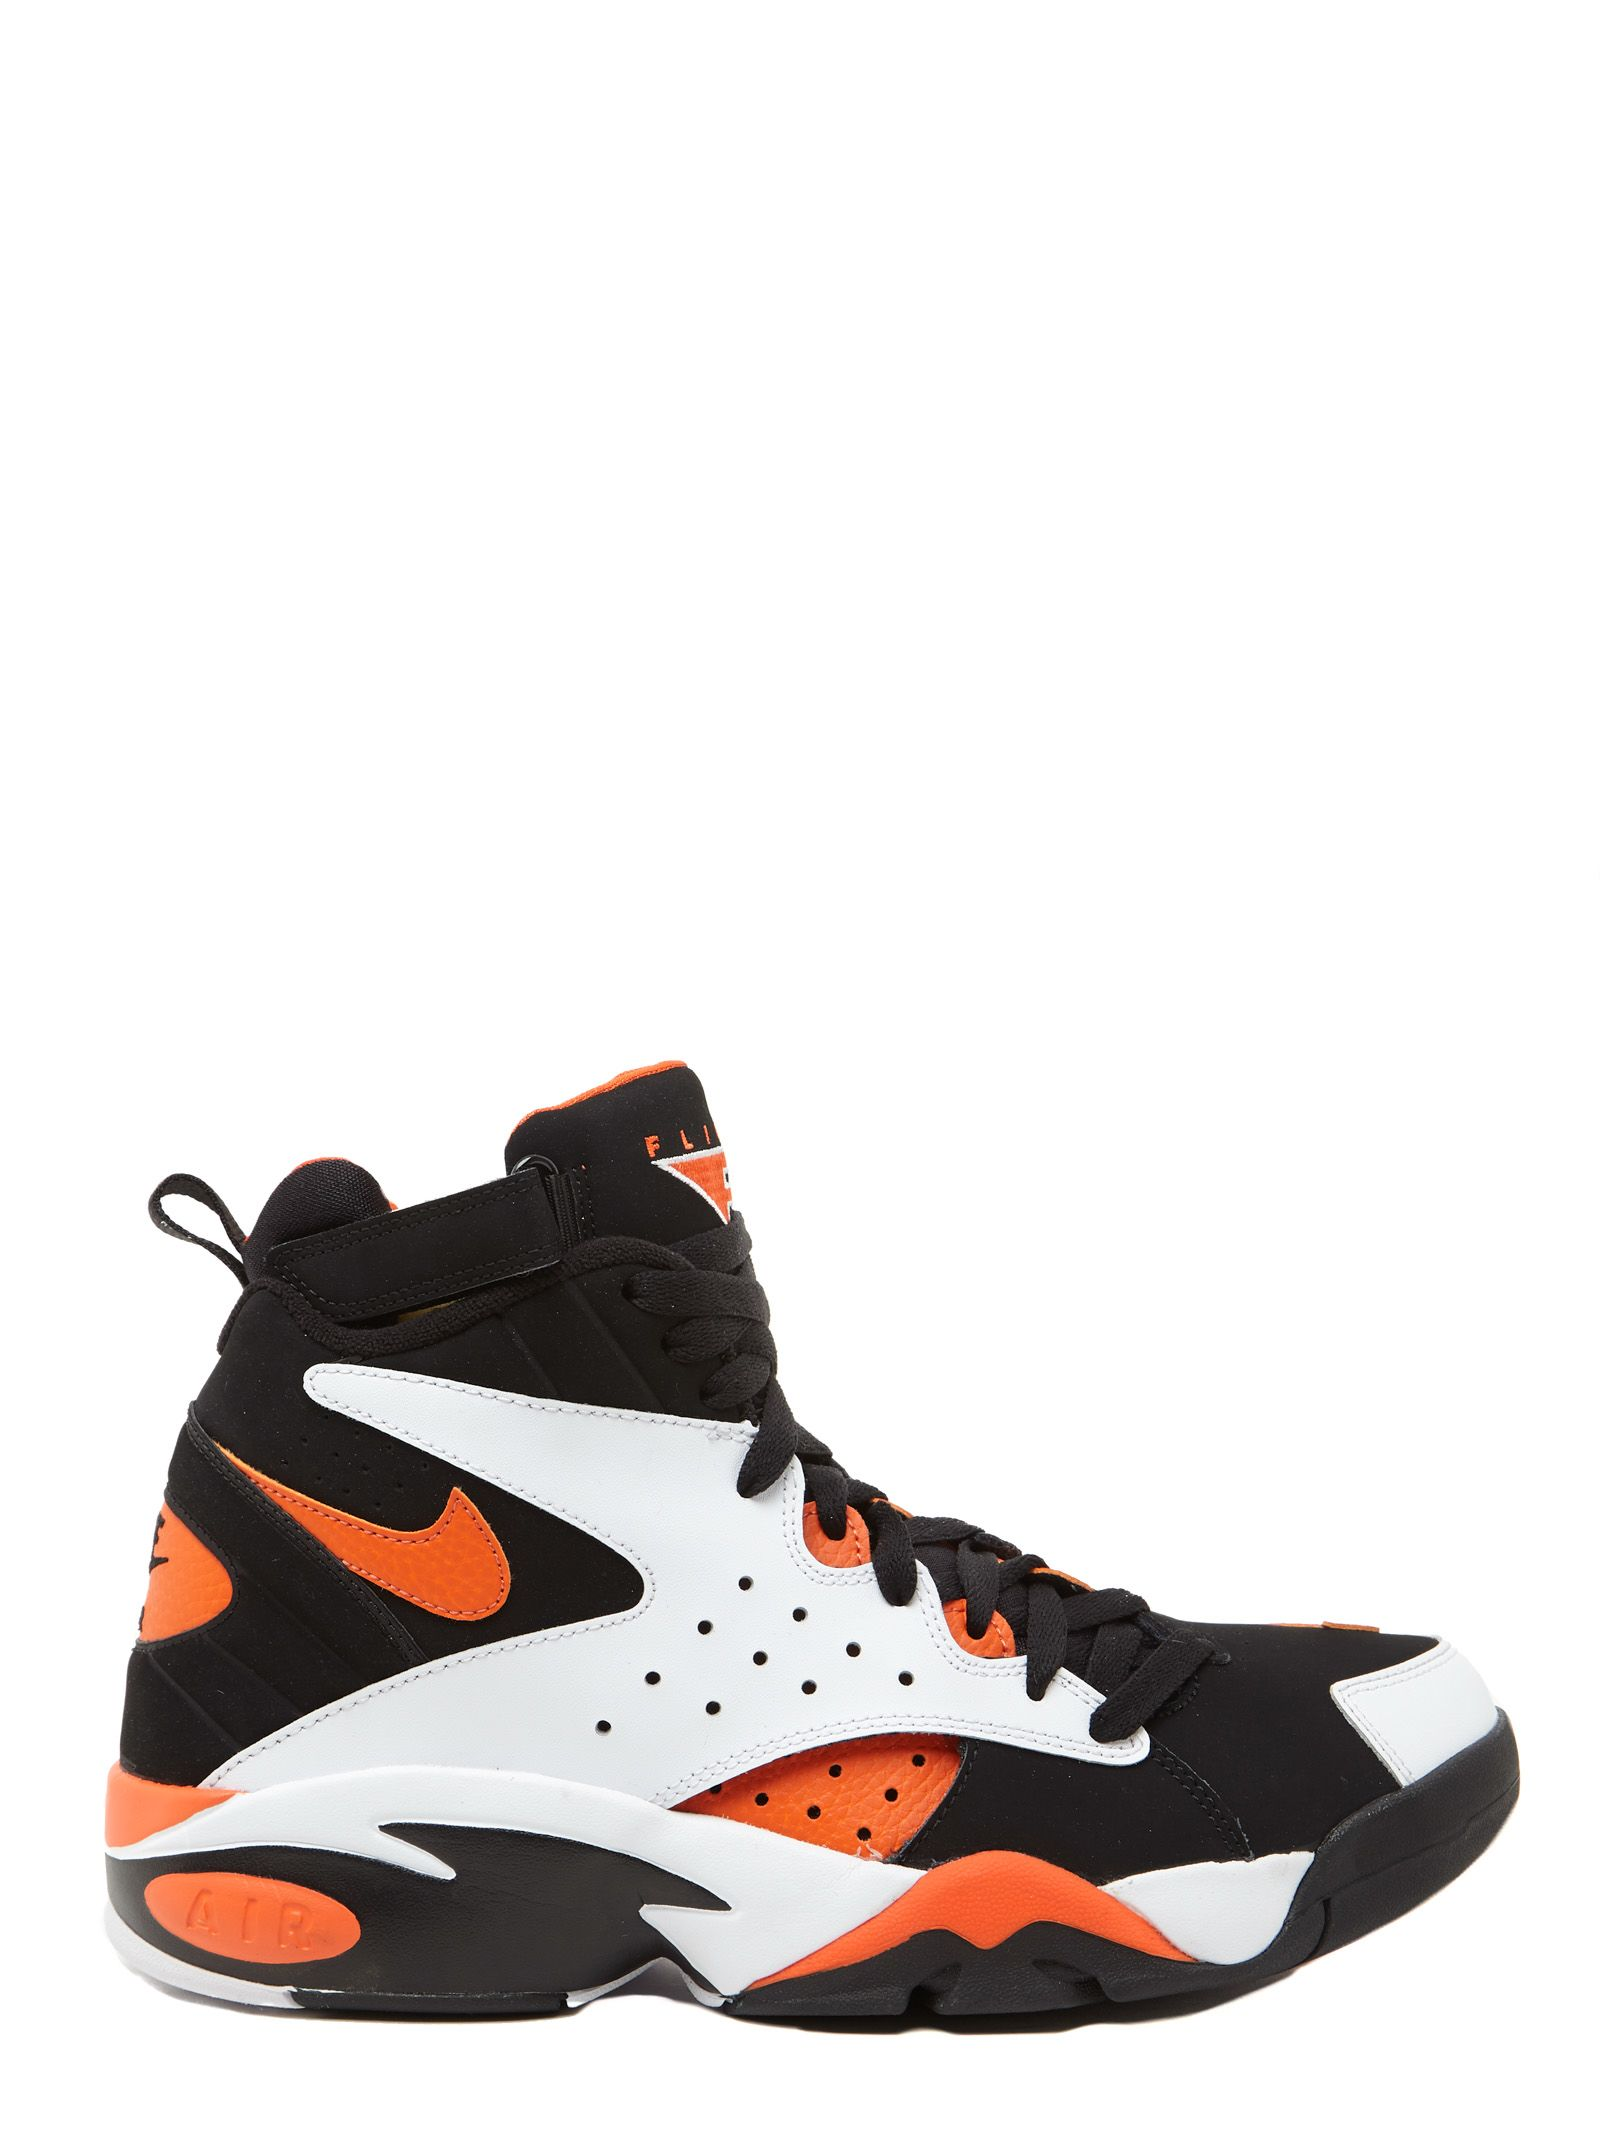 7e9bd3679199e3 Shop Nike  Air Maestro Ii Ltd  Shoes In Multicolor